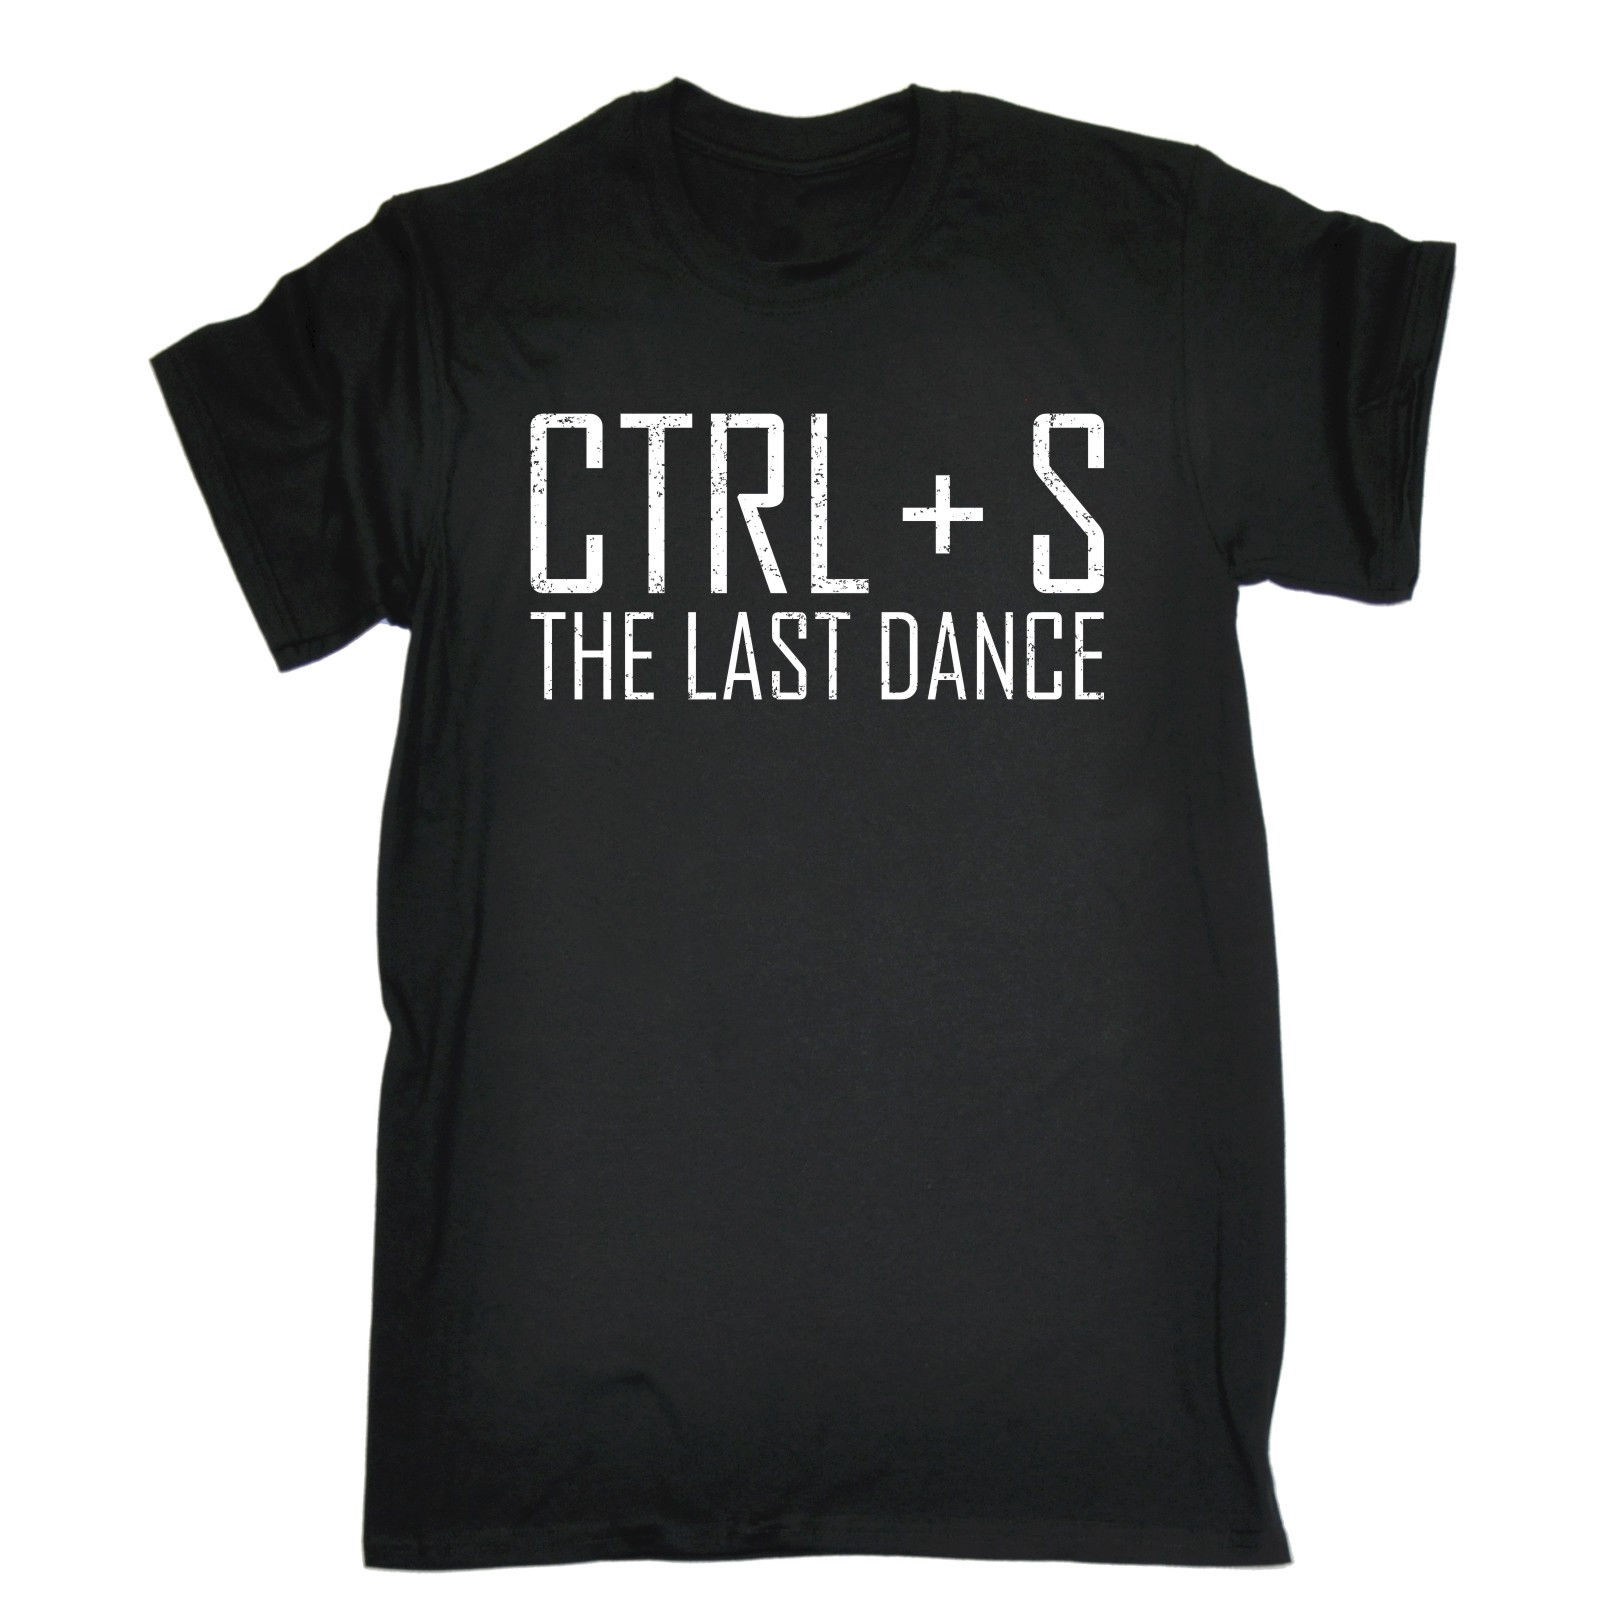 CTRL + S THE LAST DANCE T-shirt Geek Film Dancing Joke Funny Birthday Gift 123t Summer Short Sleeves T Shirt Fashion